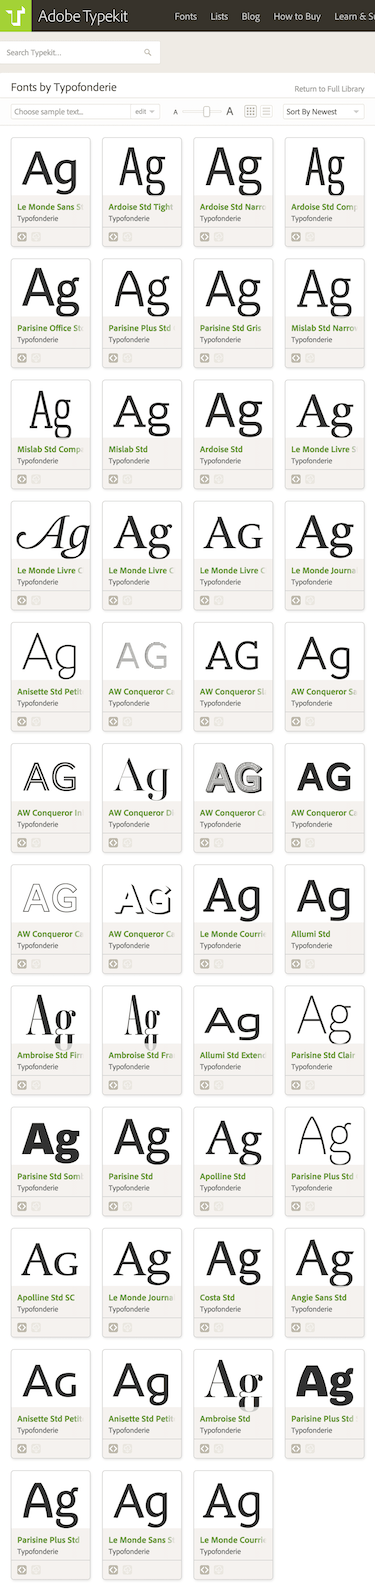 Typofonderie fonts available at Typekit